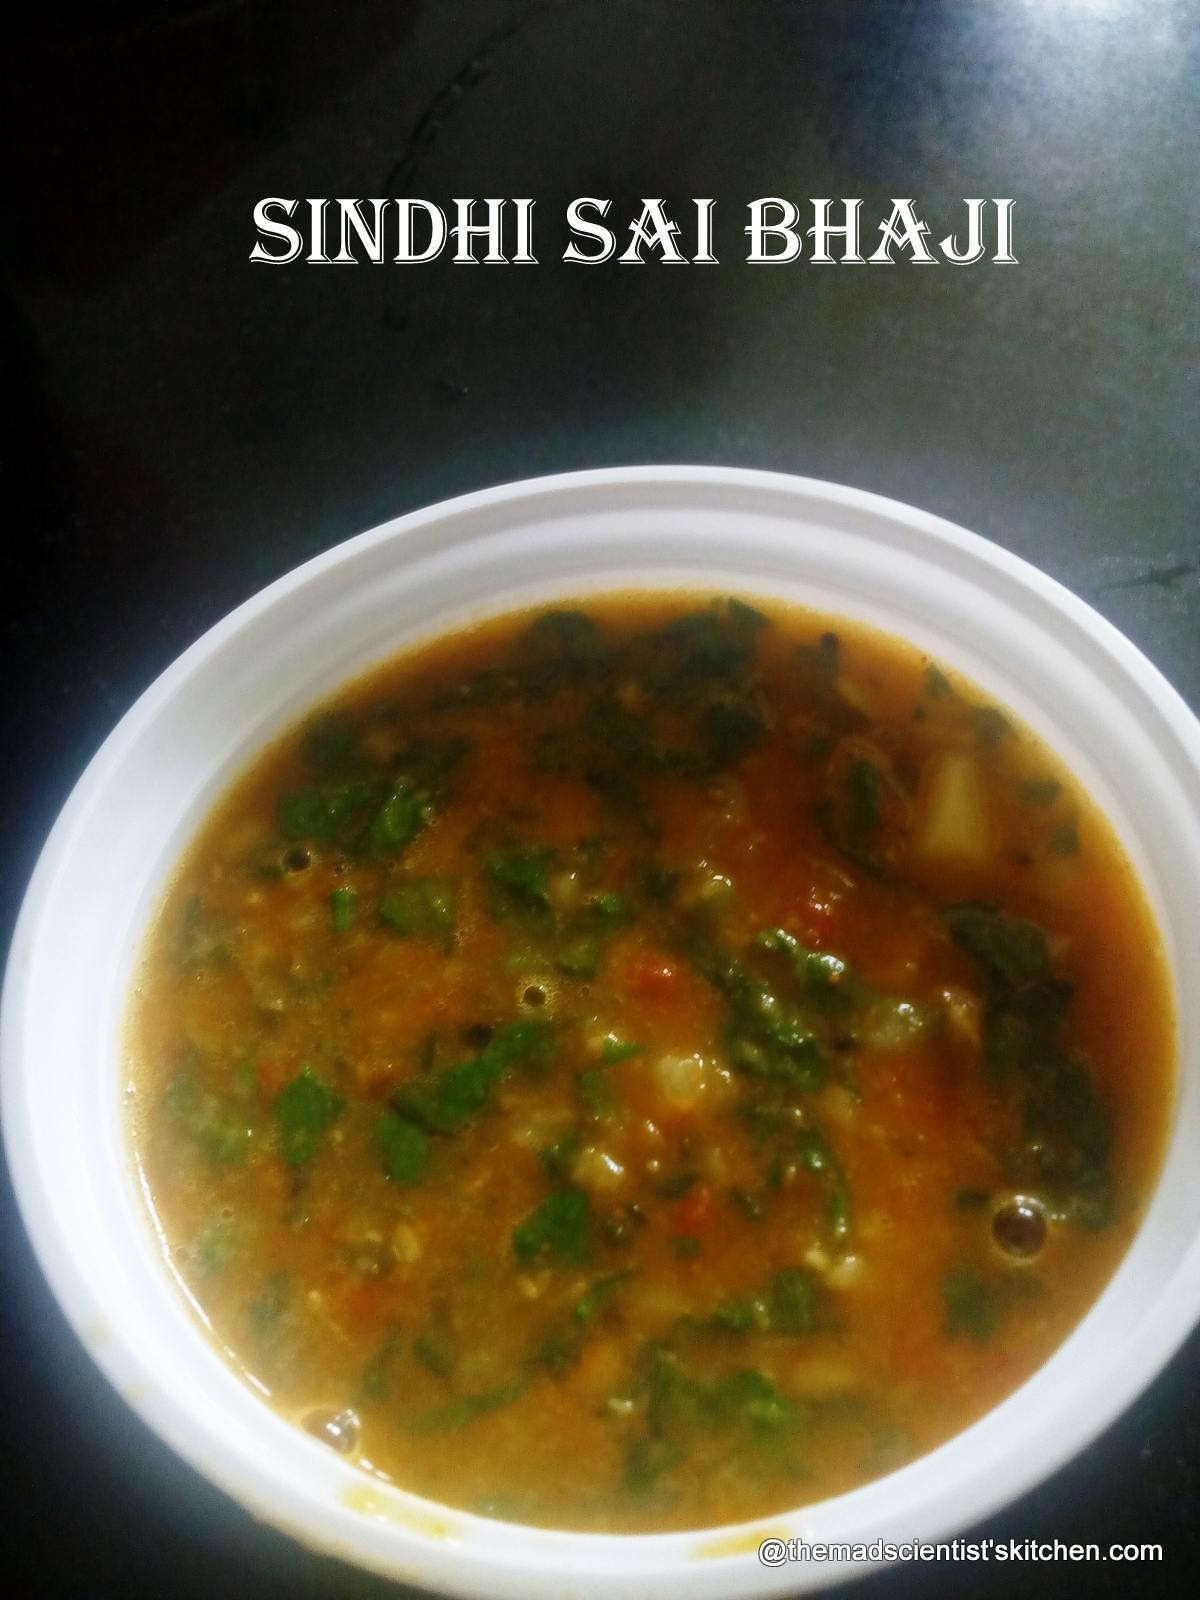 Sai Bhaji|Sindhi Sai Bhaji|Green Leafy Vegetables with Dal